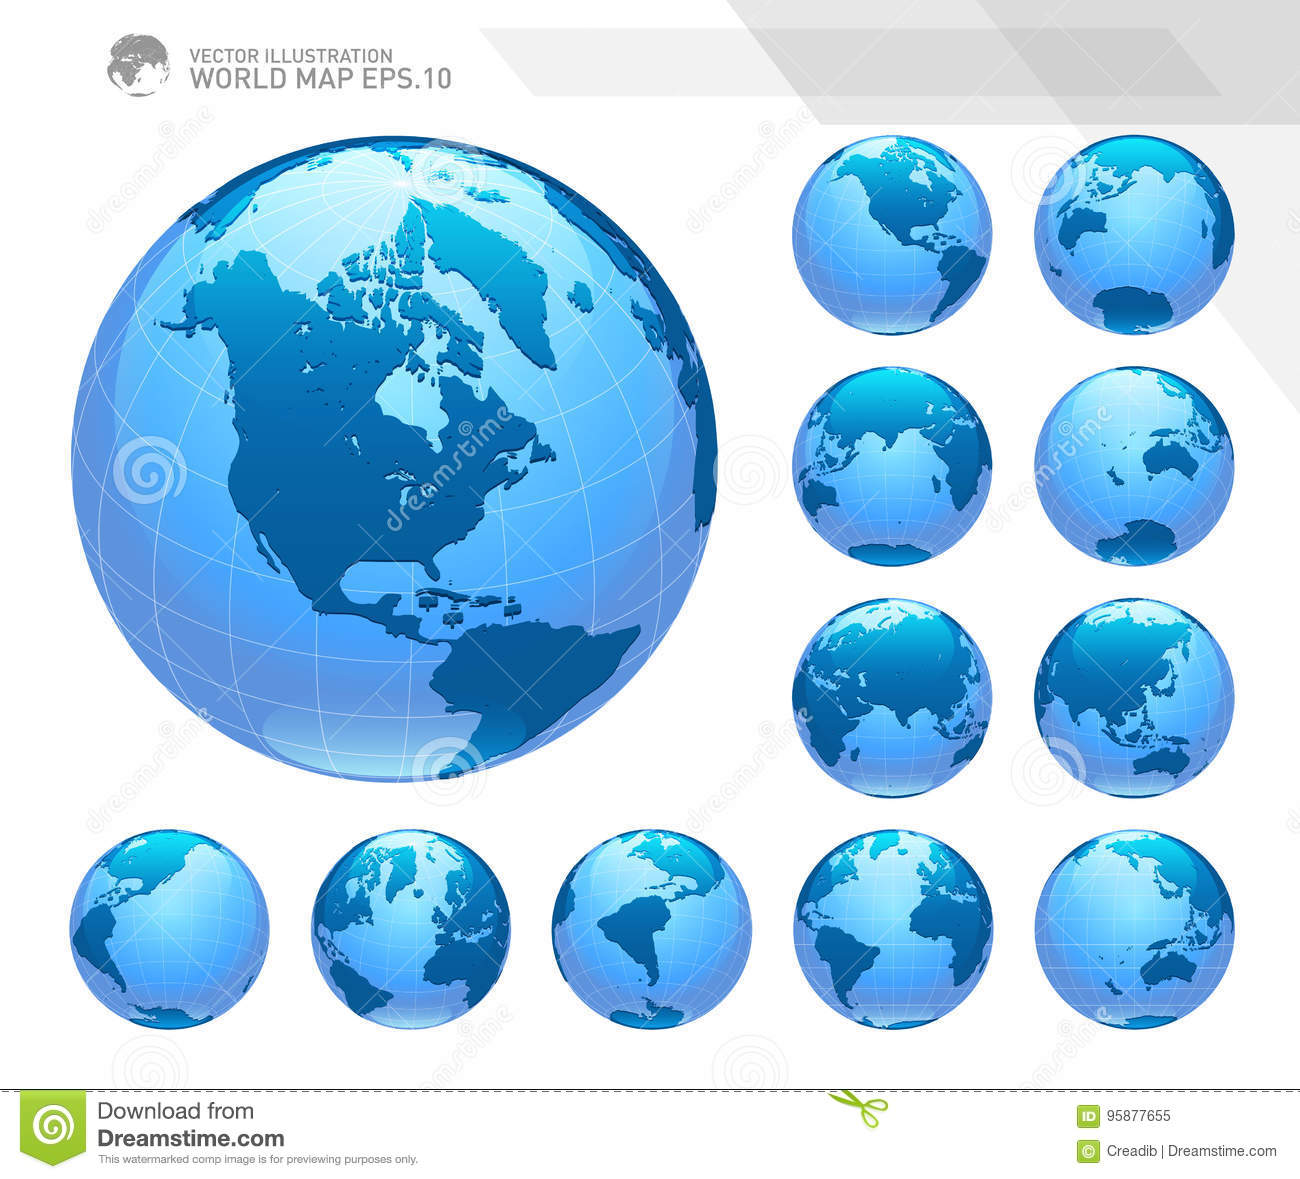 Globes showing earth with all continents digital world globe vector globes showing earth with all continents digital world globe vector dotted world map vector flat australia gumiabroncs Choice Image